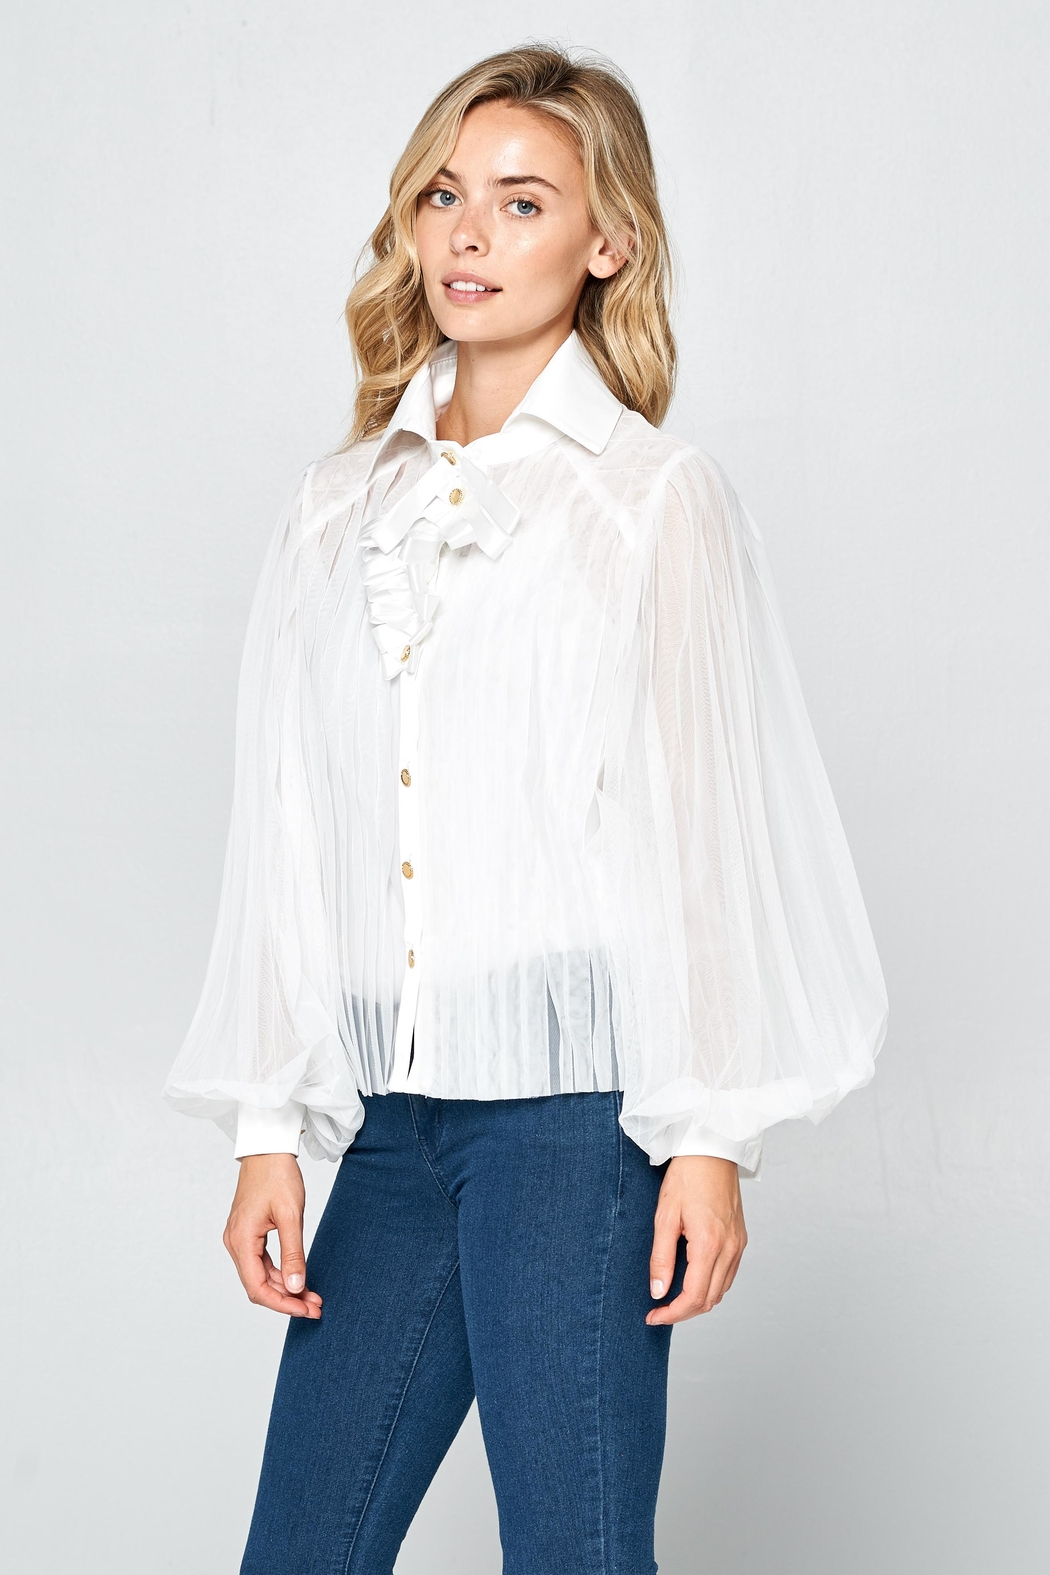 Racine Romantic Silhouette Blouse - Side Cropped Image